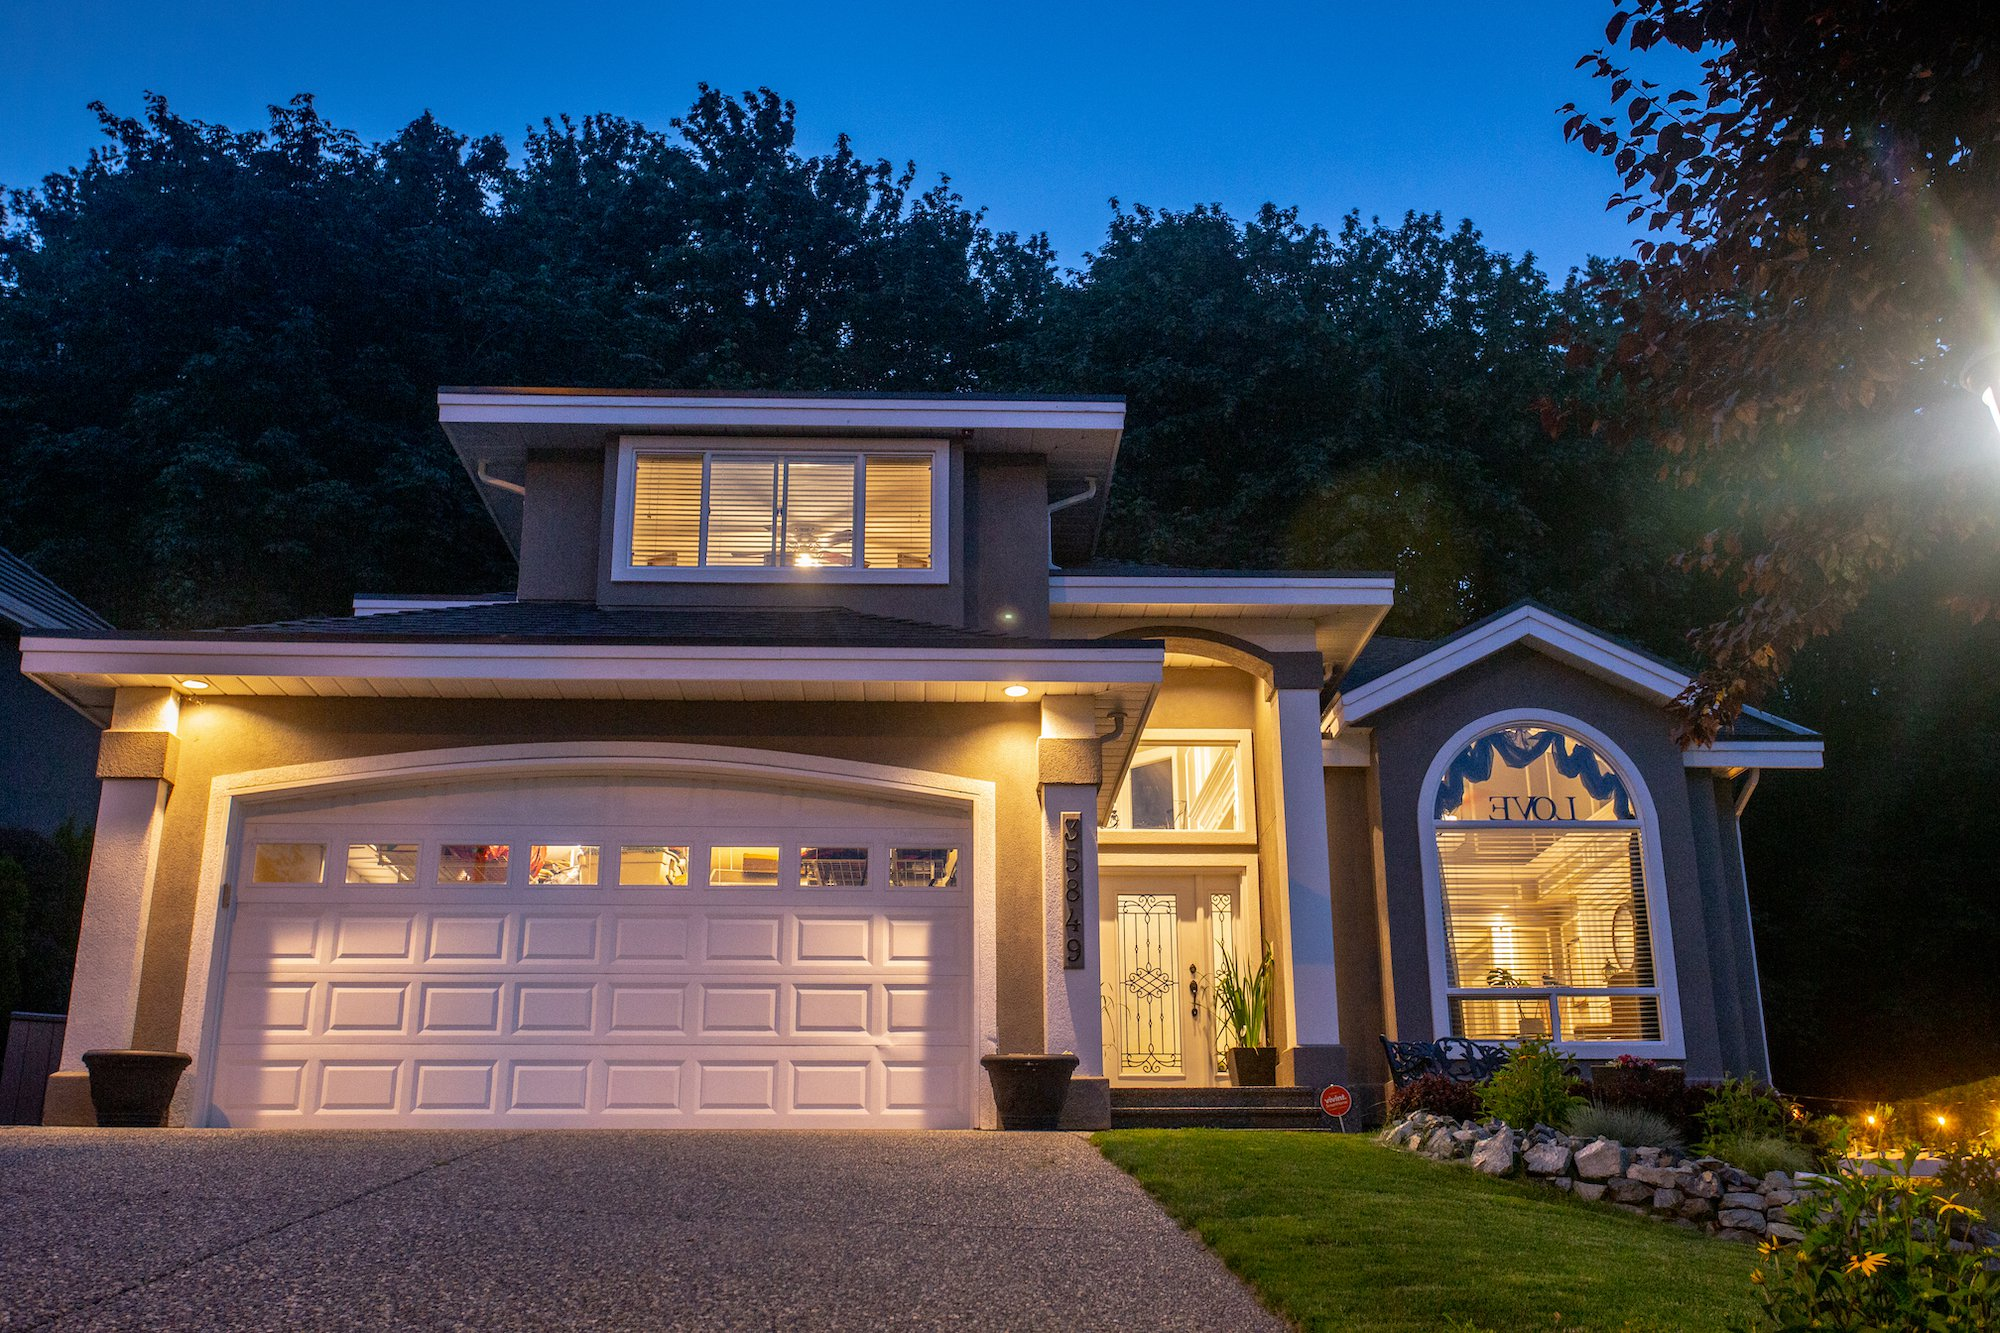 Main Photo: 35849 Regal Parkway in Abbotsford: Abbotsford East House for sale : MLS®# R2473025